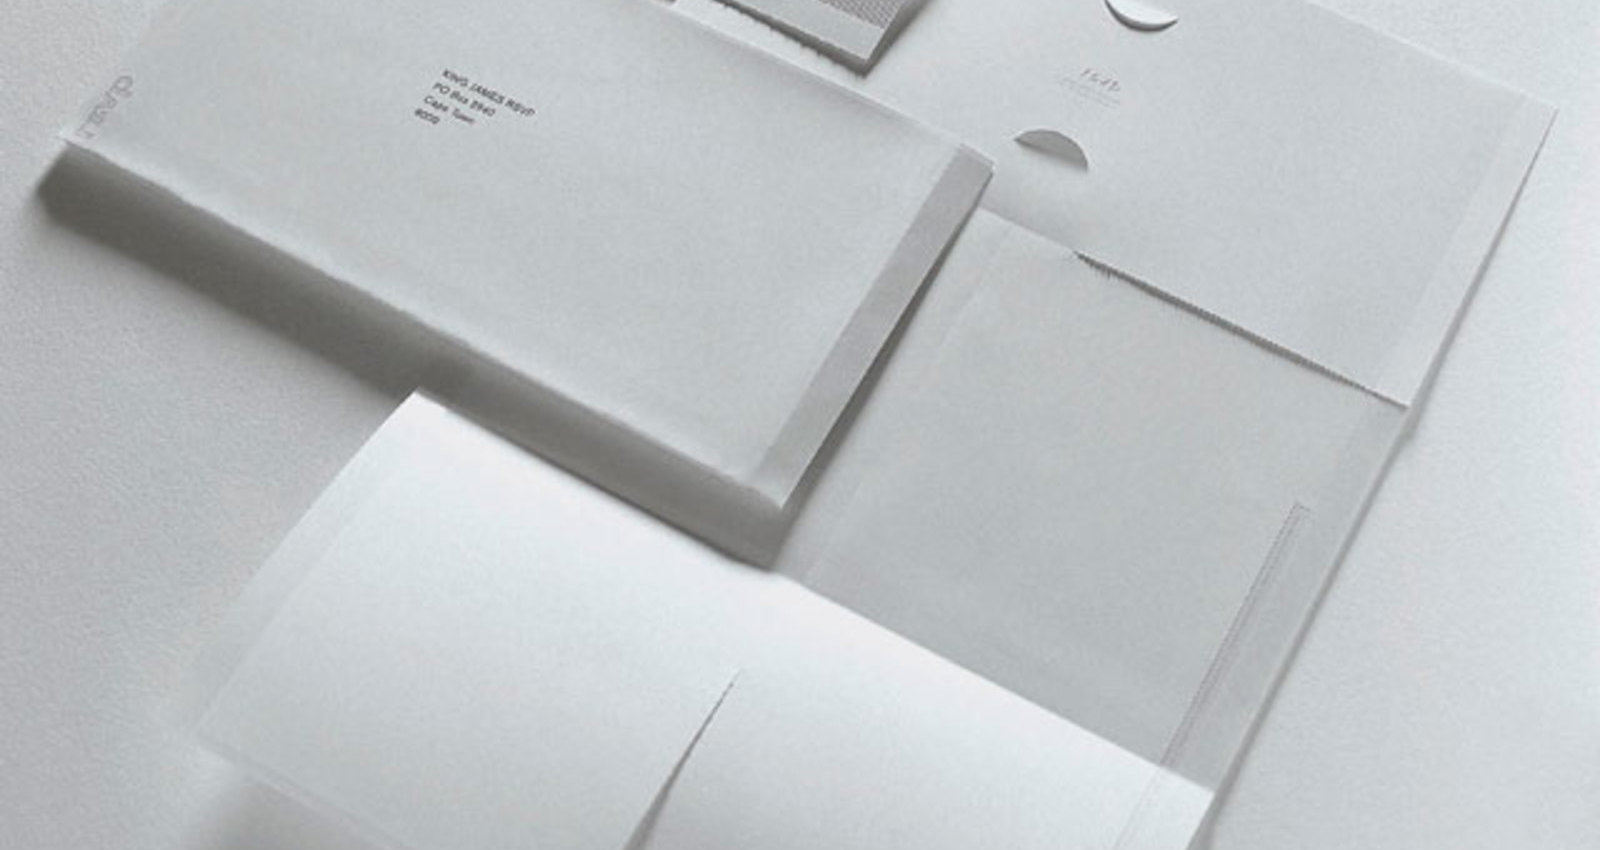 RSVP All-in-One Stationery